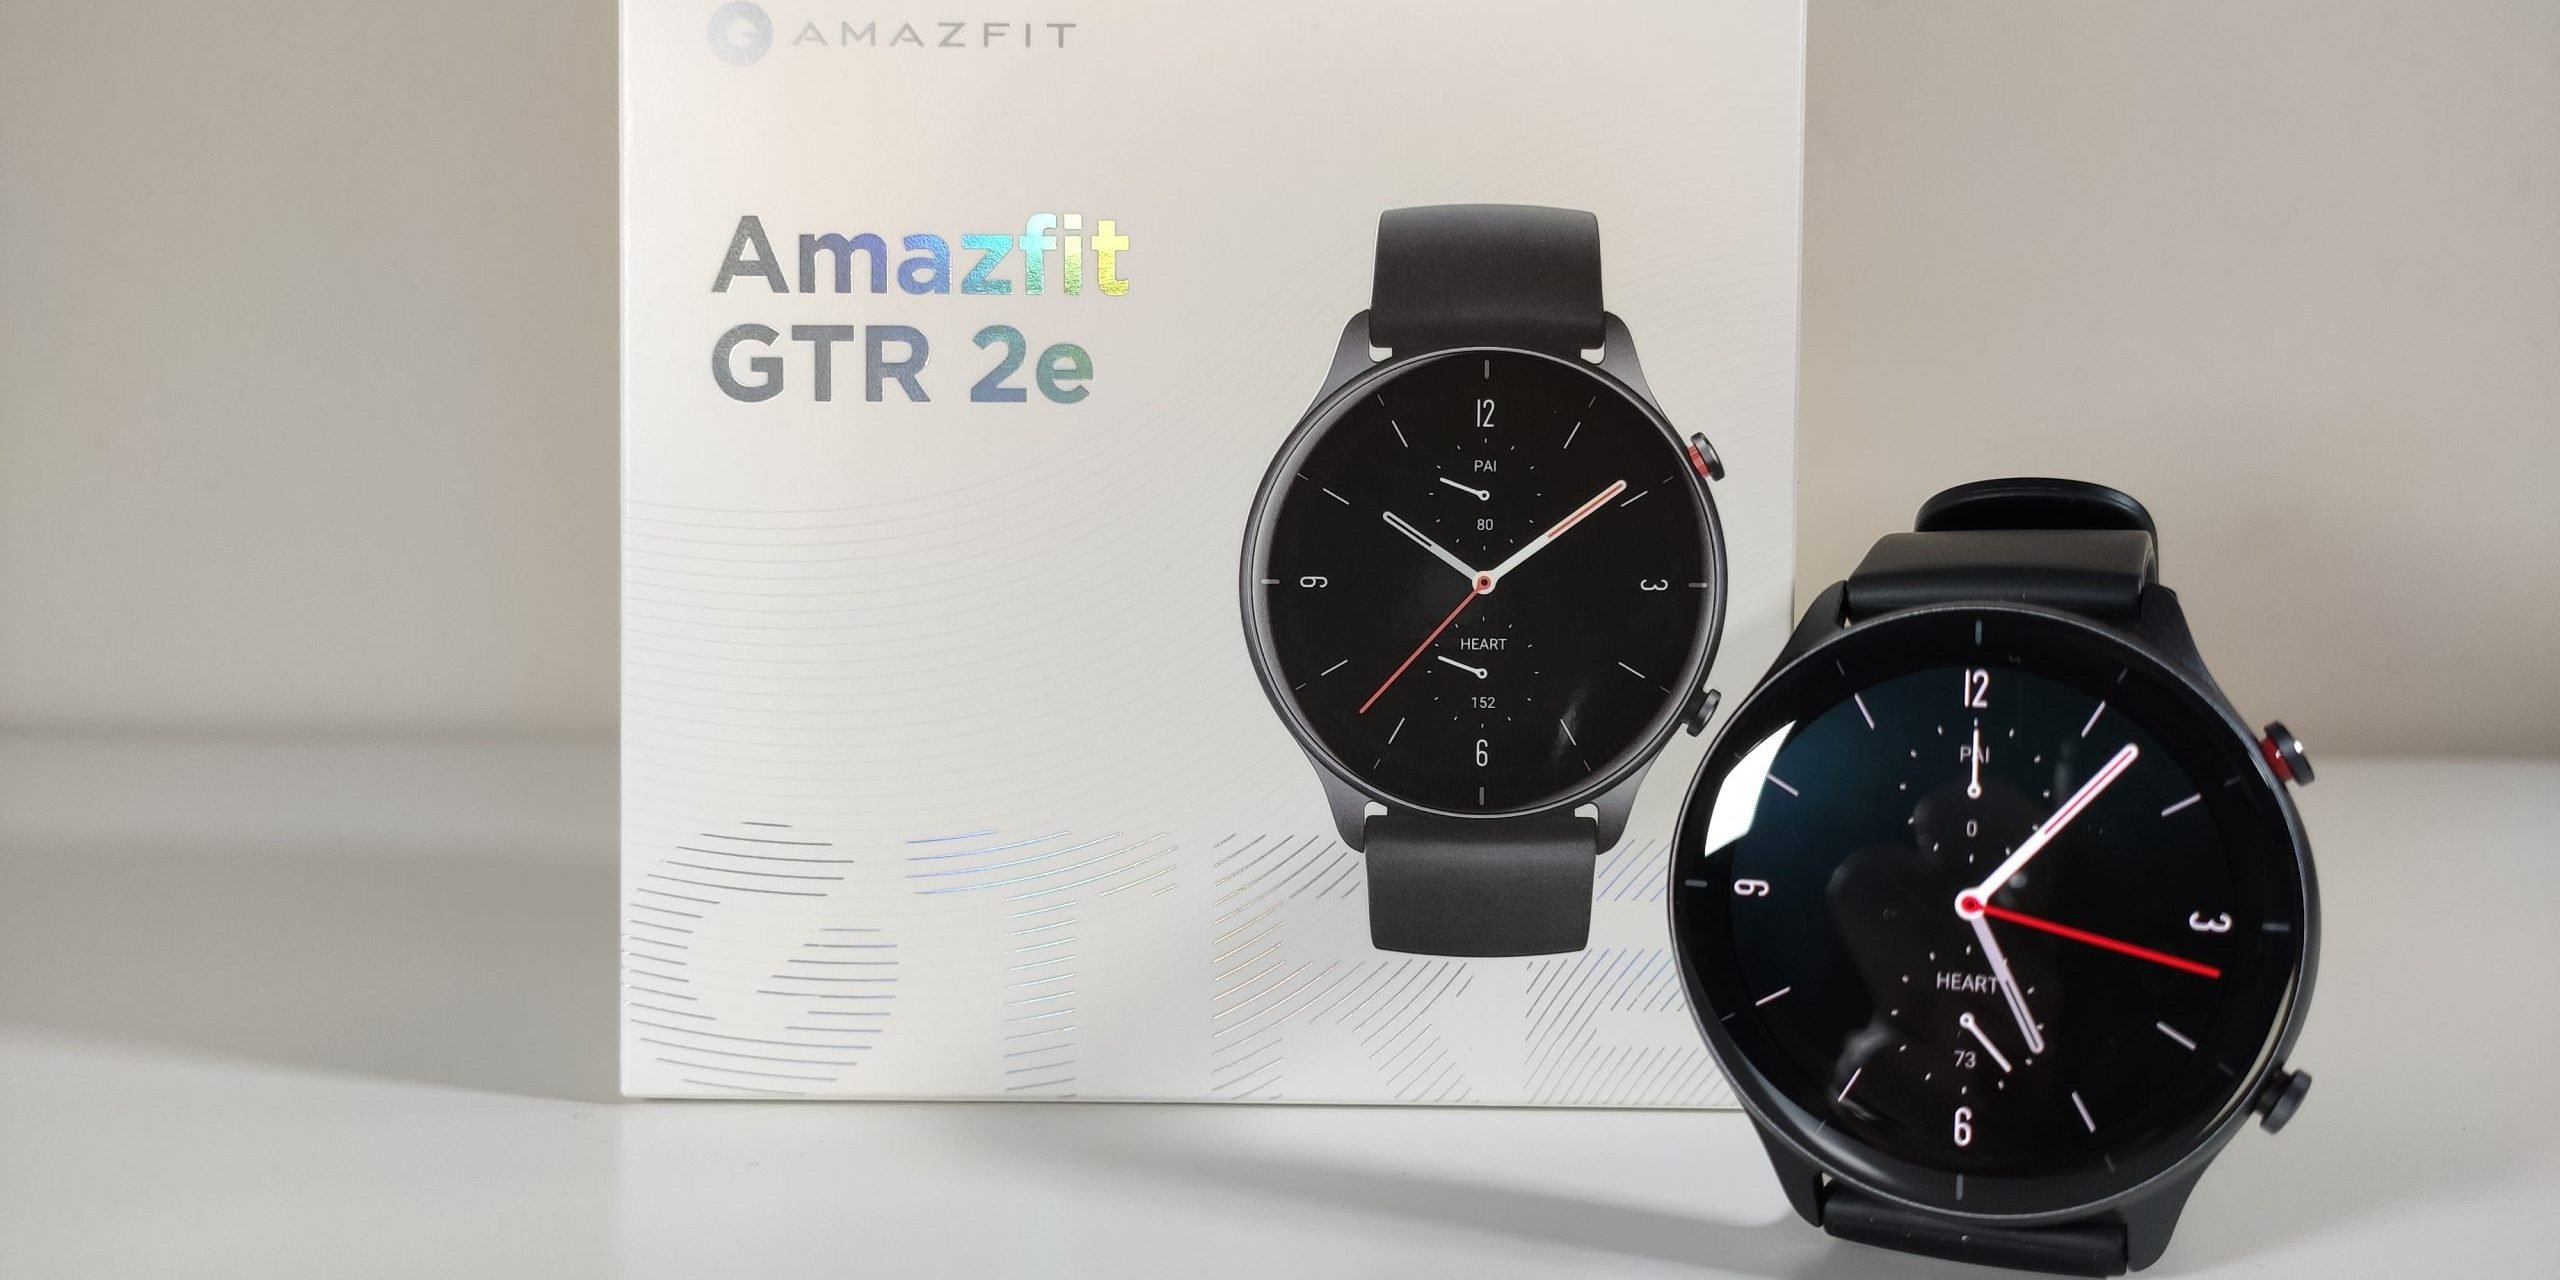 Unboxing and first impressions of the new Amazfit GTR 2e. News Xiaomi Addicts